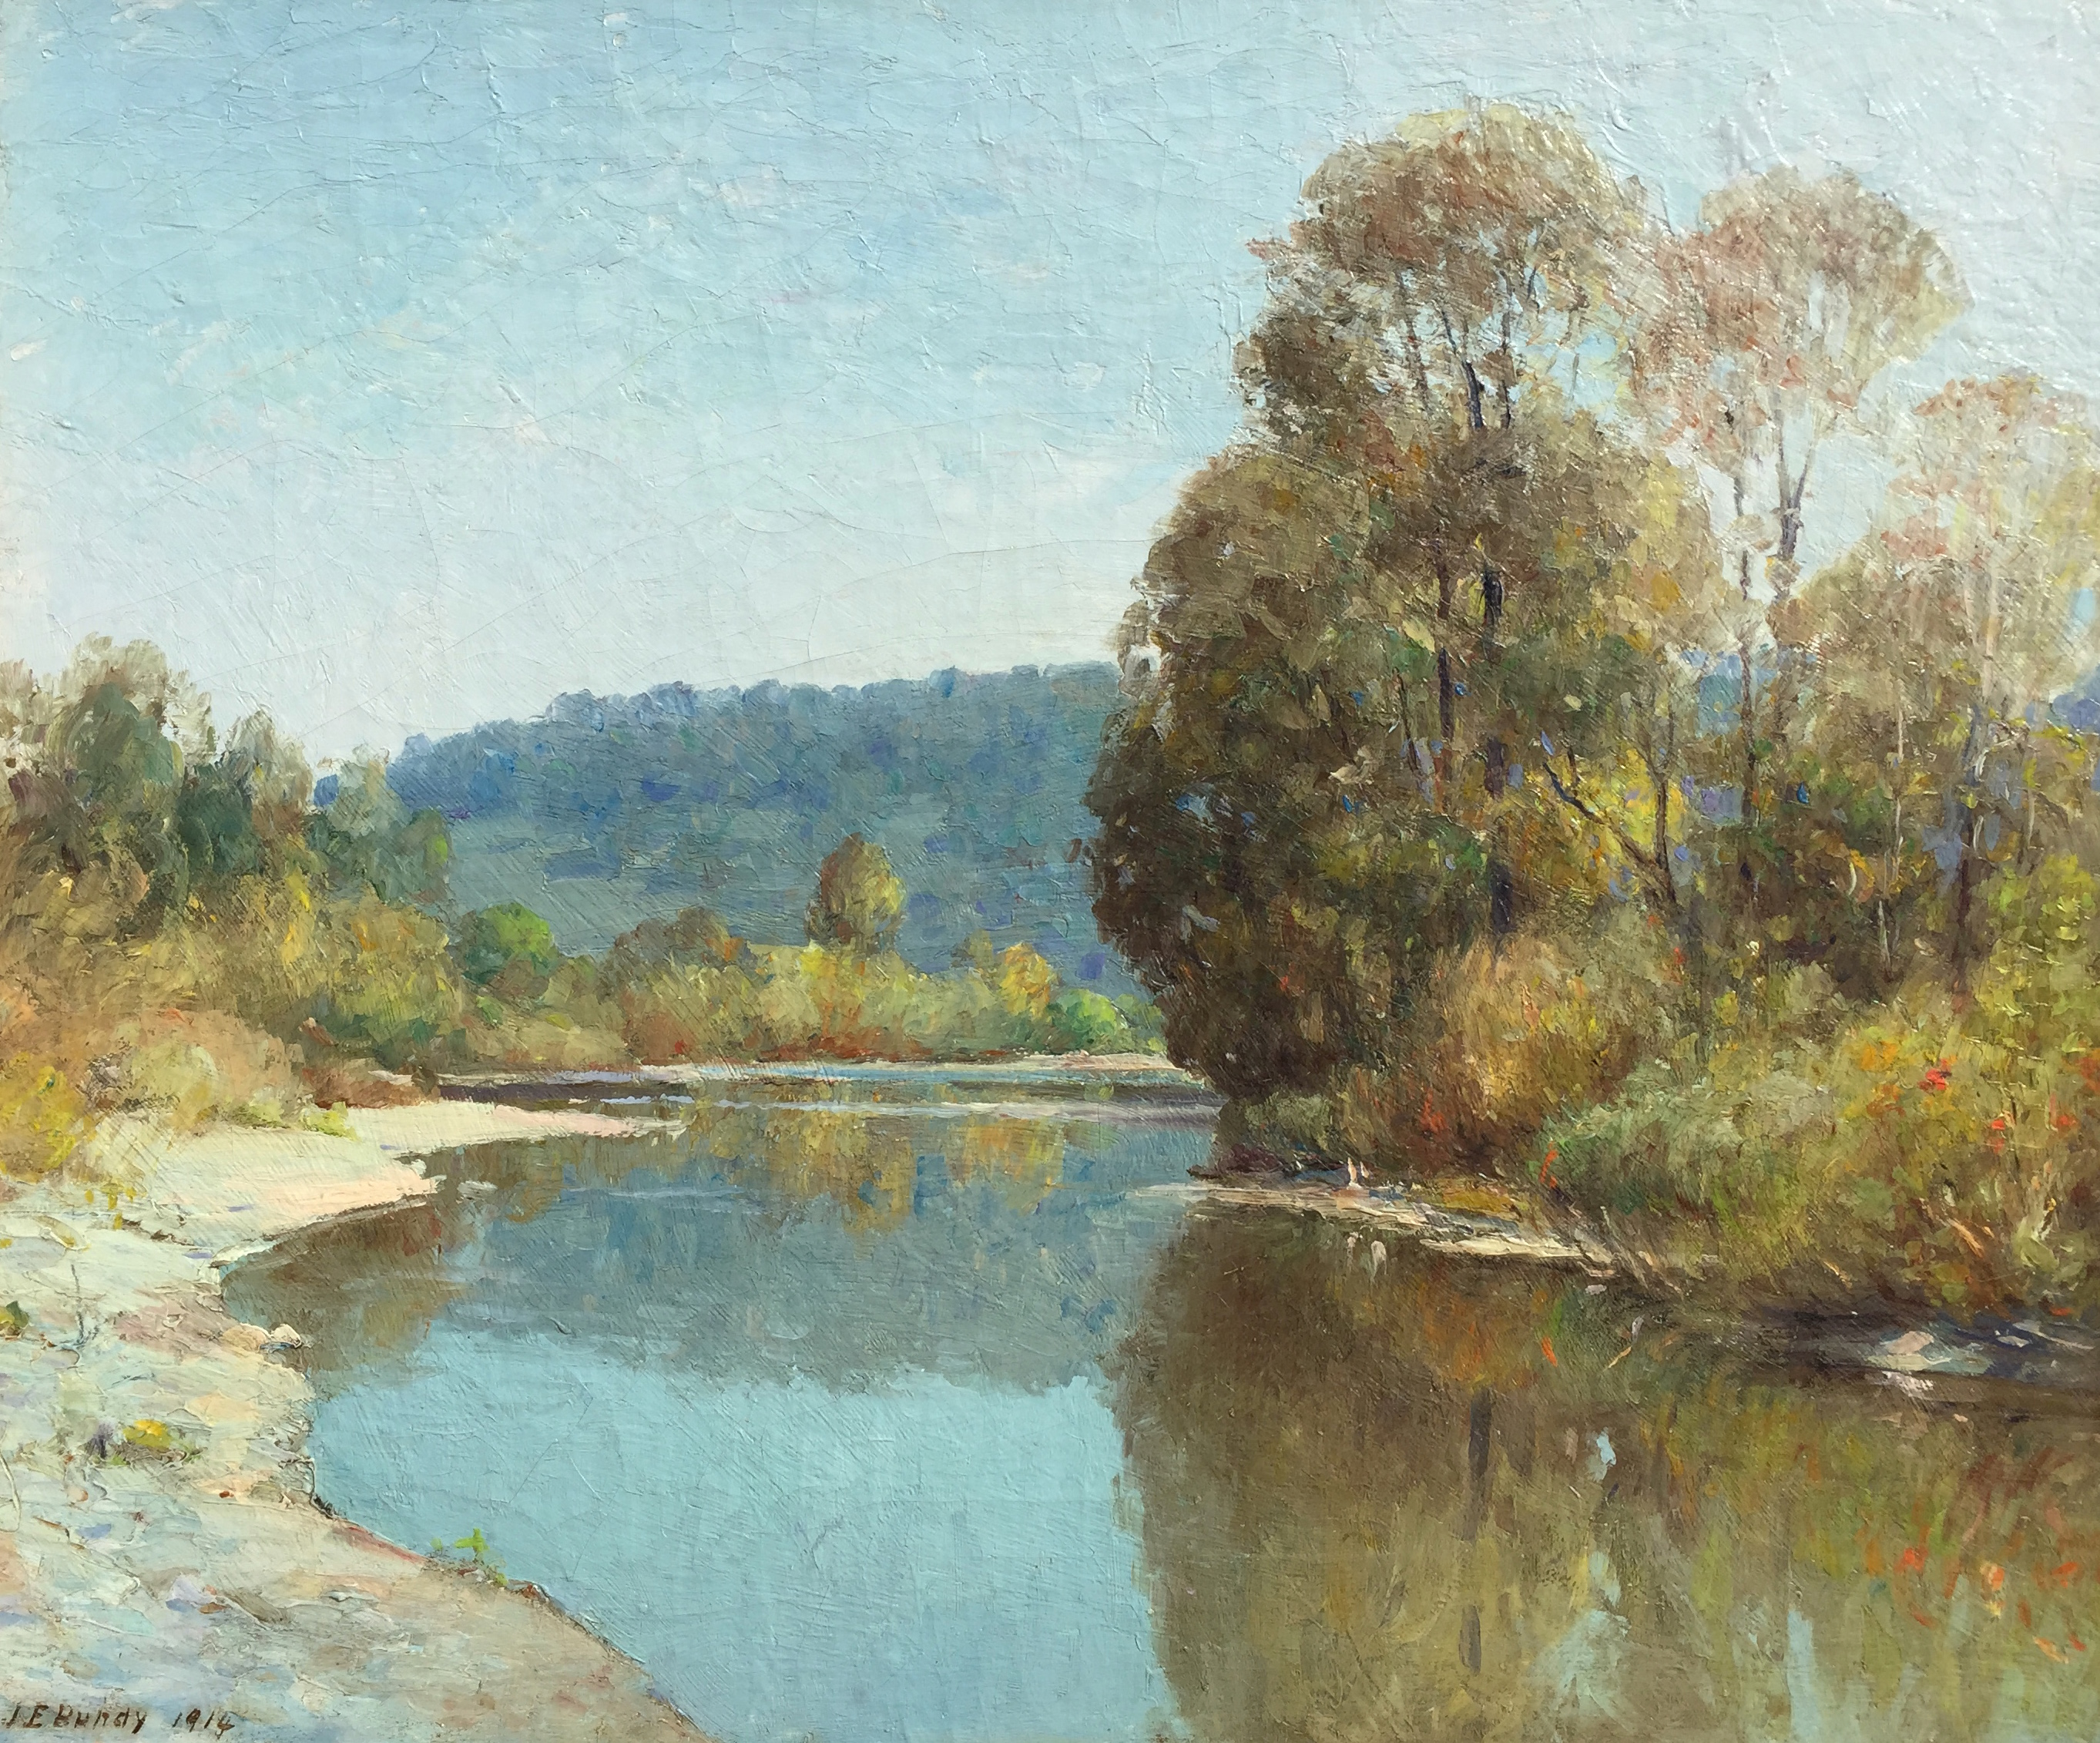 bundy-onthewhitewater-cropped